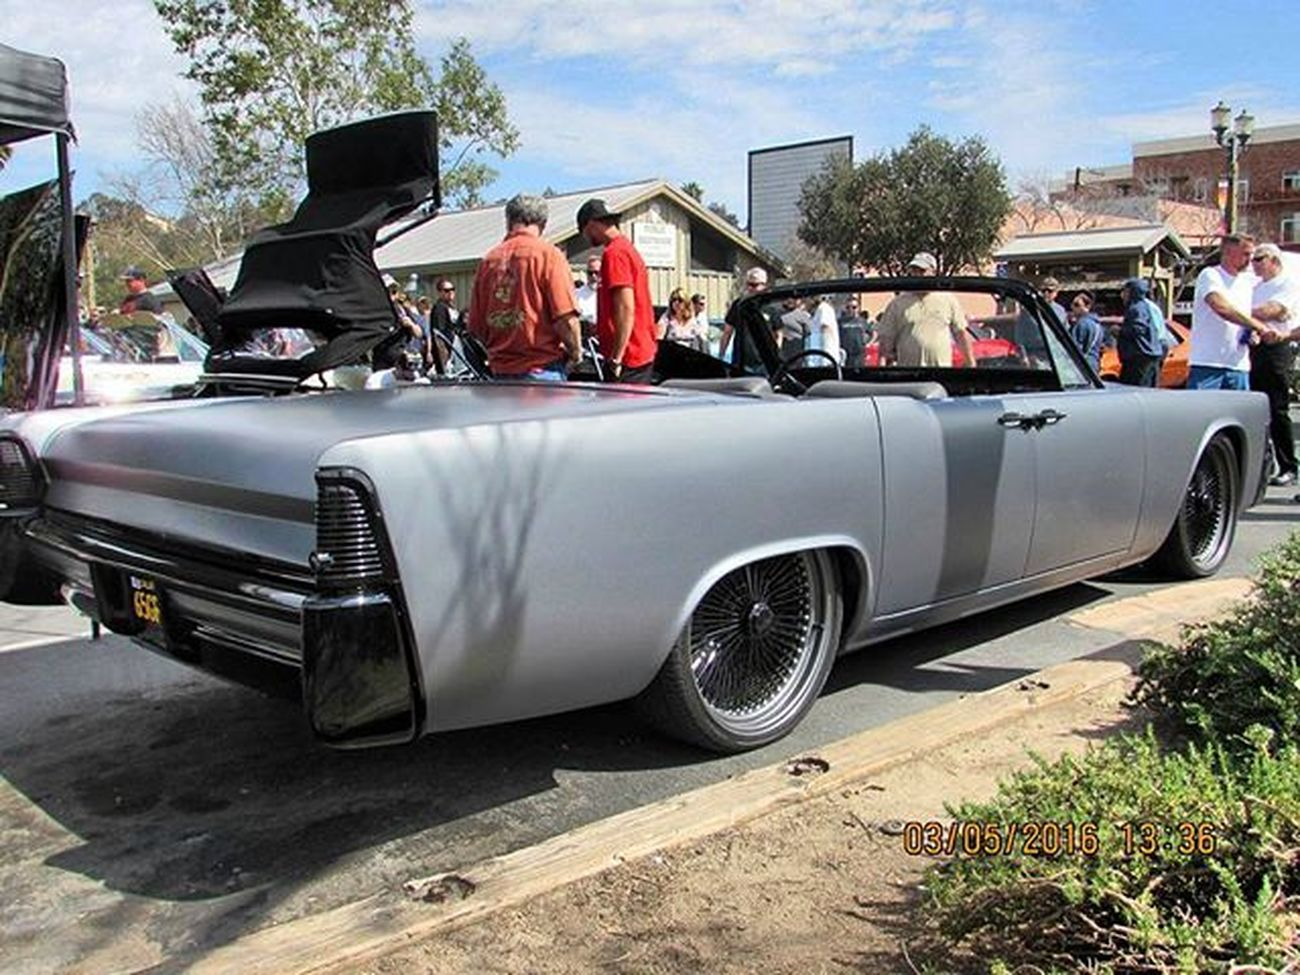 @_lincolnboys_ absolutely loved shooting this one. Continental Mattegrey Temecula Rodrun 2016 Workflow Autodetailing ABC7Eyewitness Managment PATIENTSONLY Caviargold Ccifam Medicated Bjj Bdubfam Bodyboarder Surfer Extremesports Fit StonertypeA Prop215sb420 Alternativemedicine Fibromyalgia Chronicpainwarrior Ptsdawareness ptsd